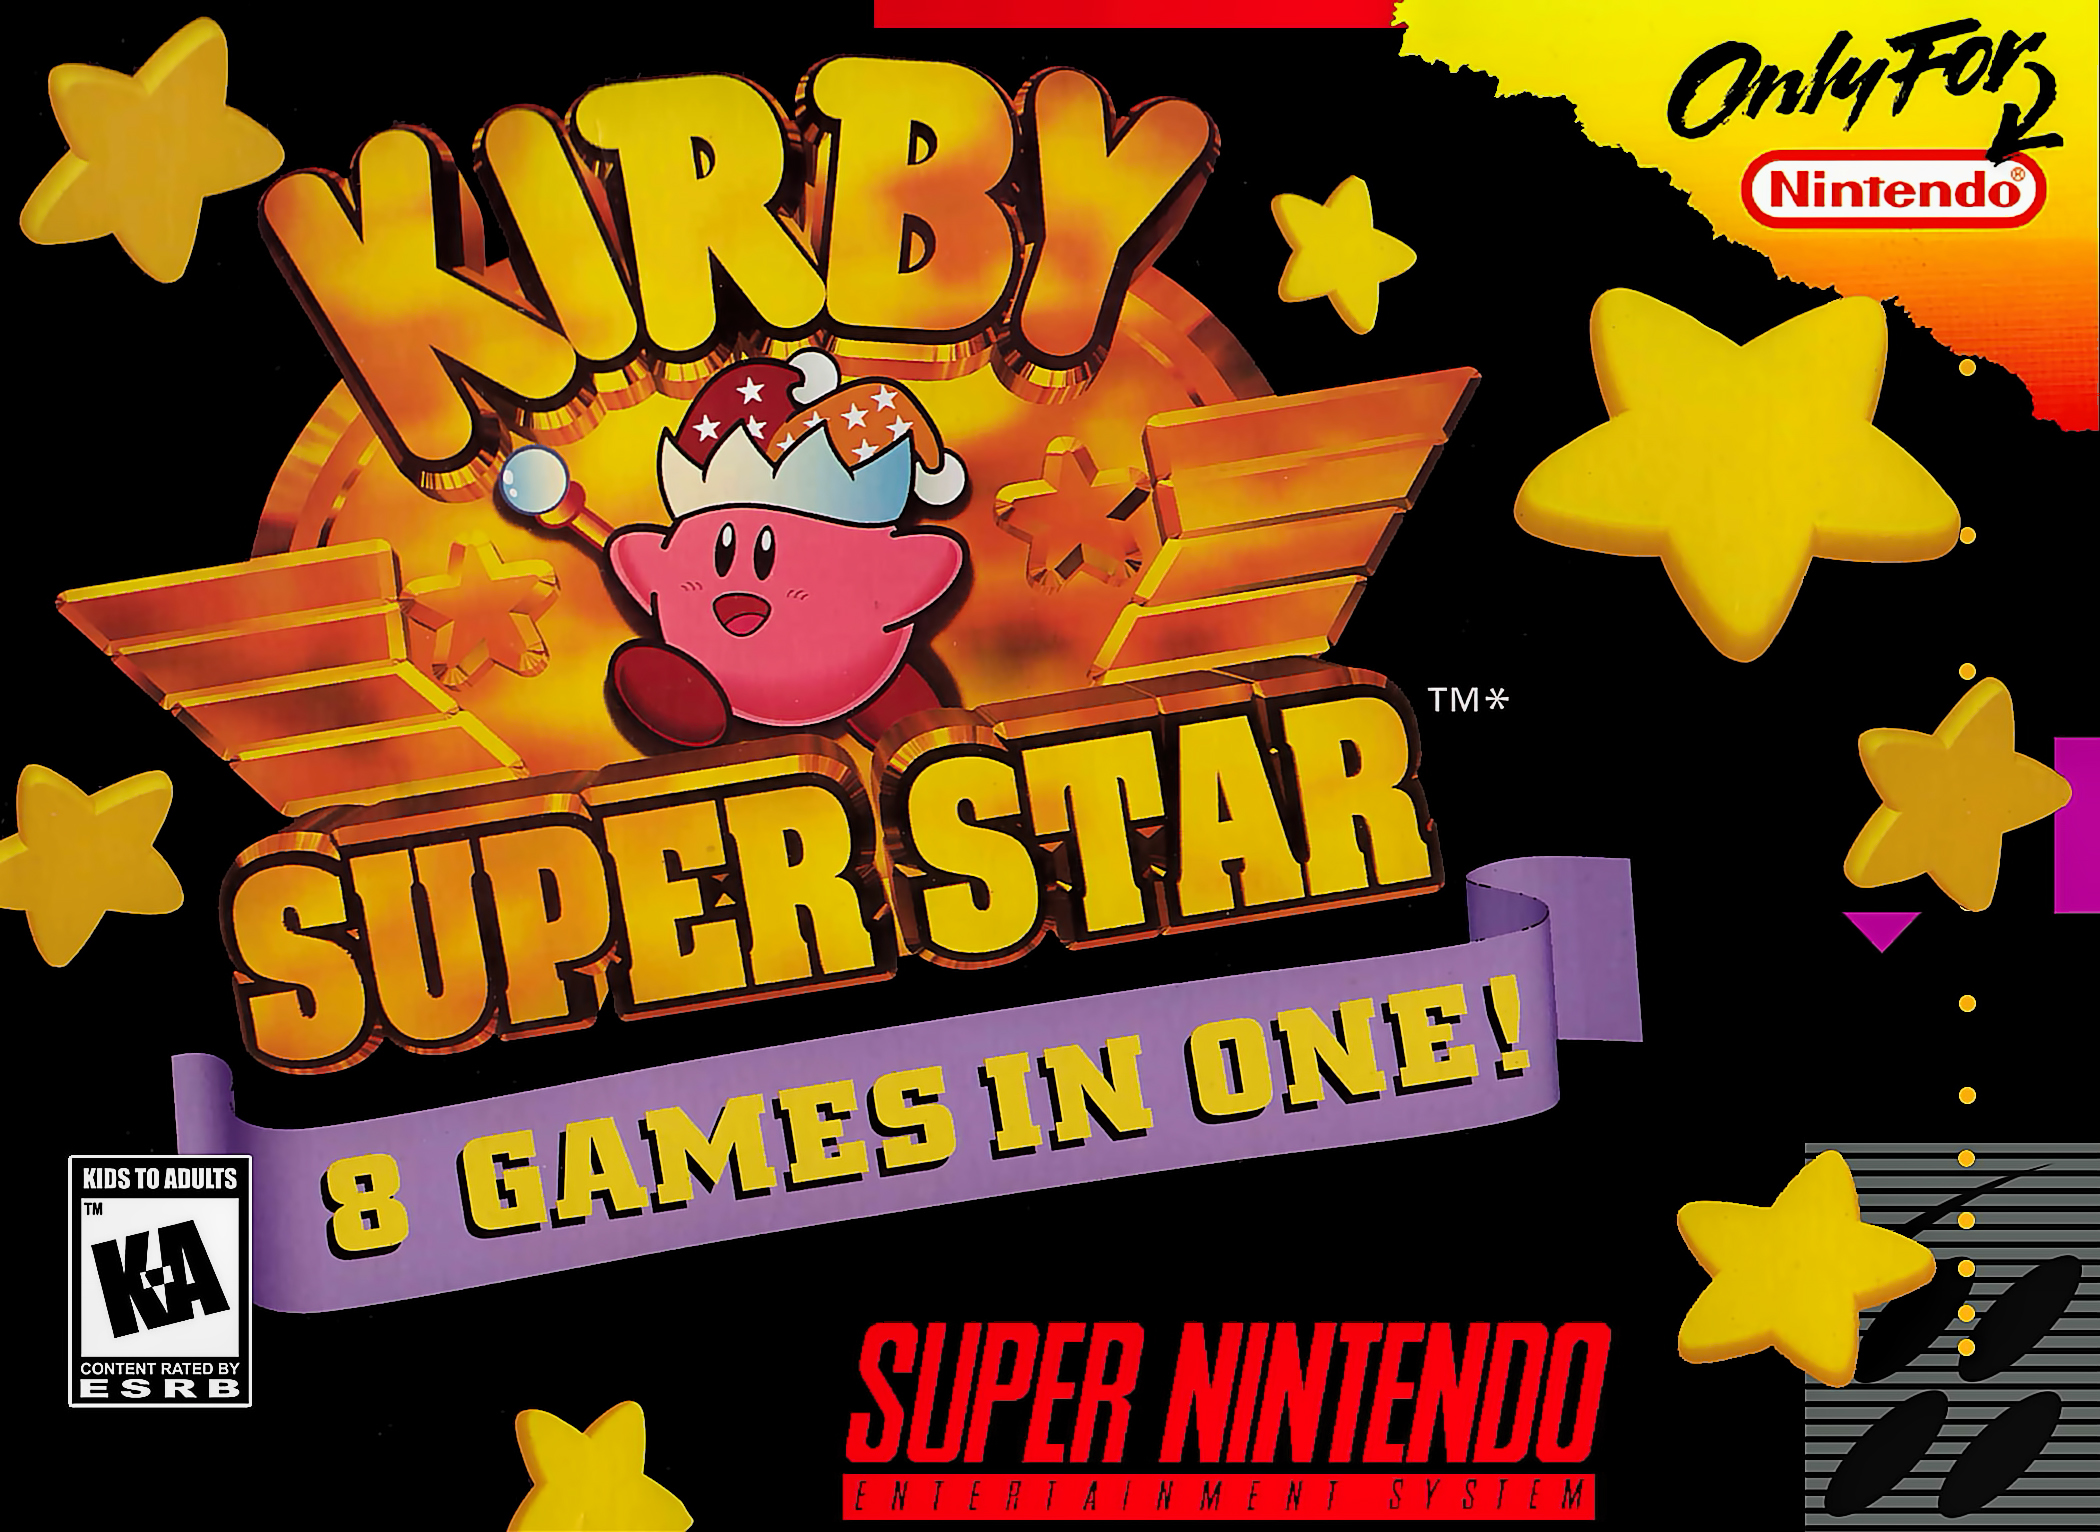 super star games